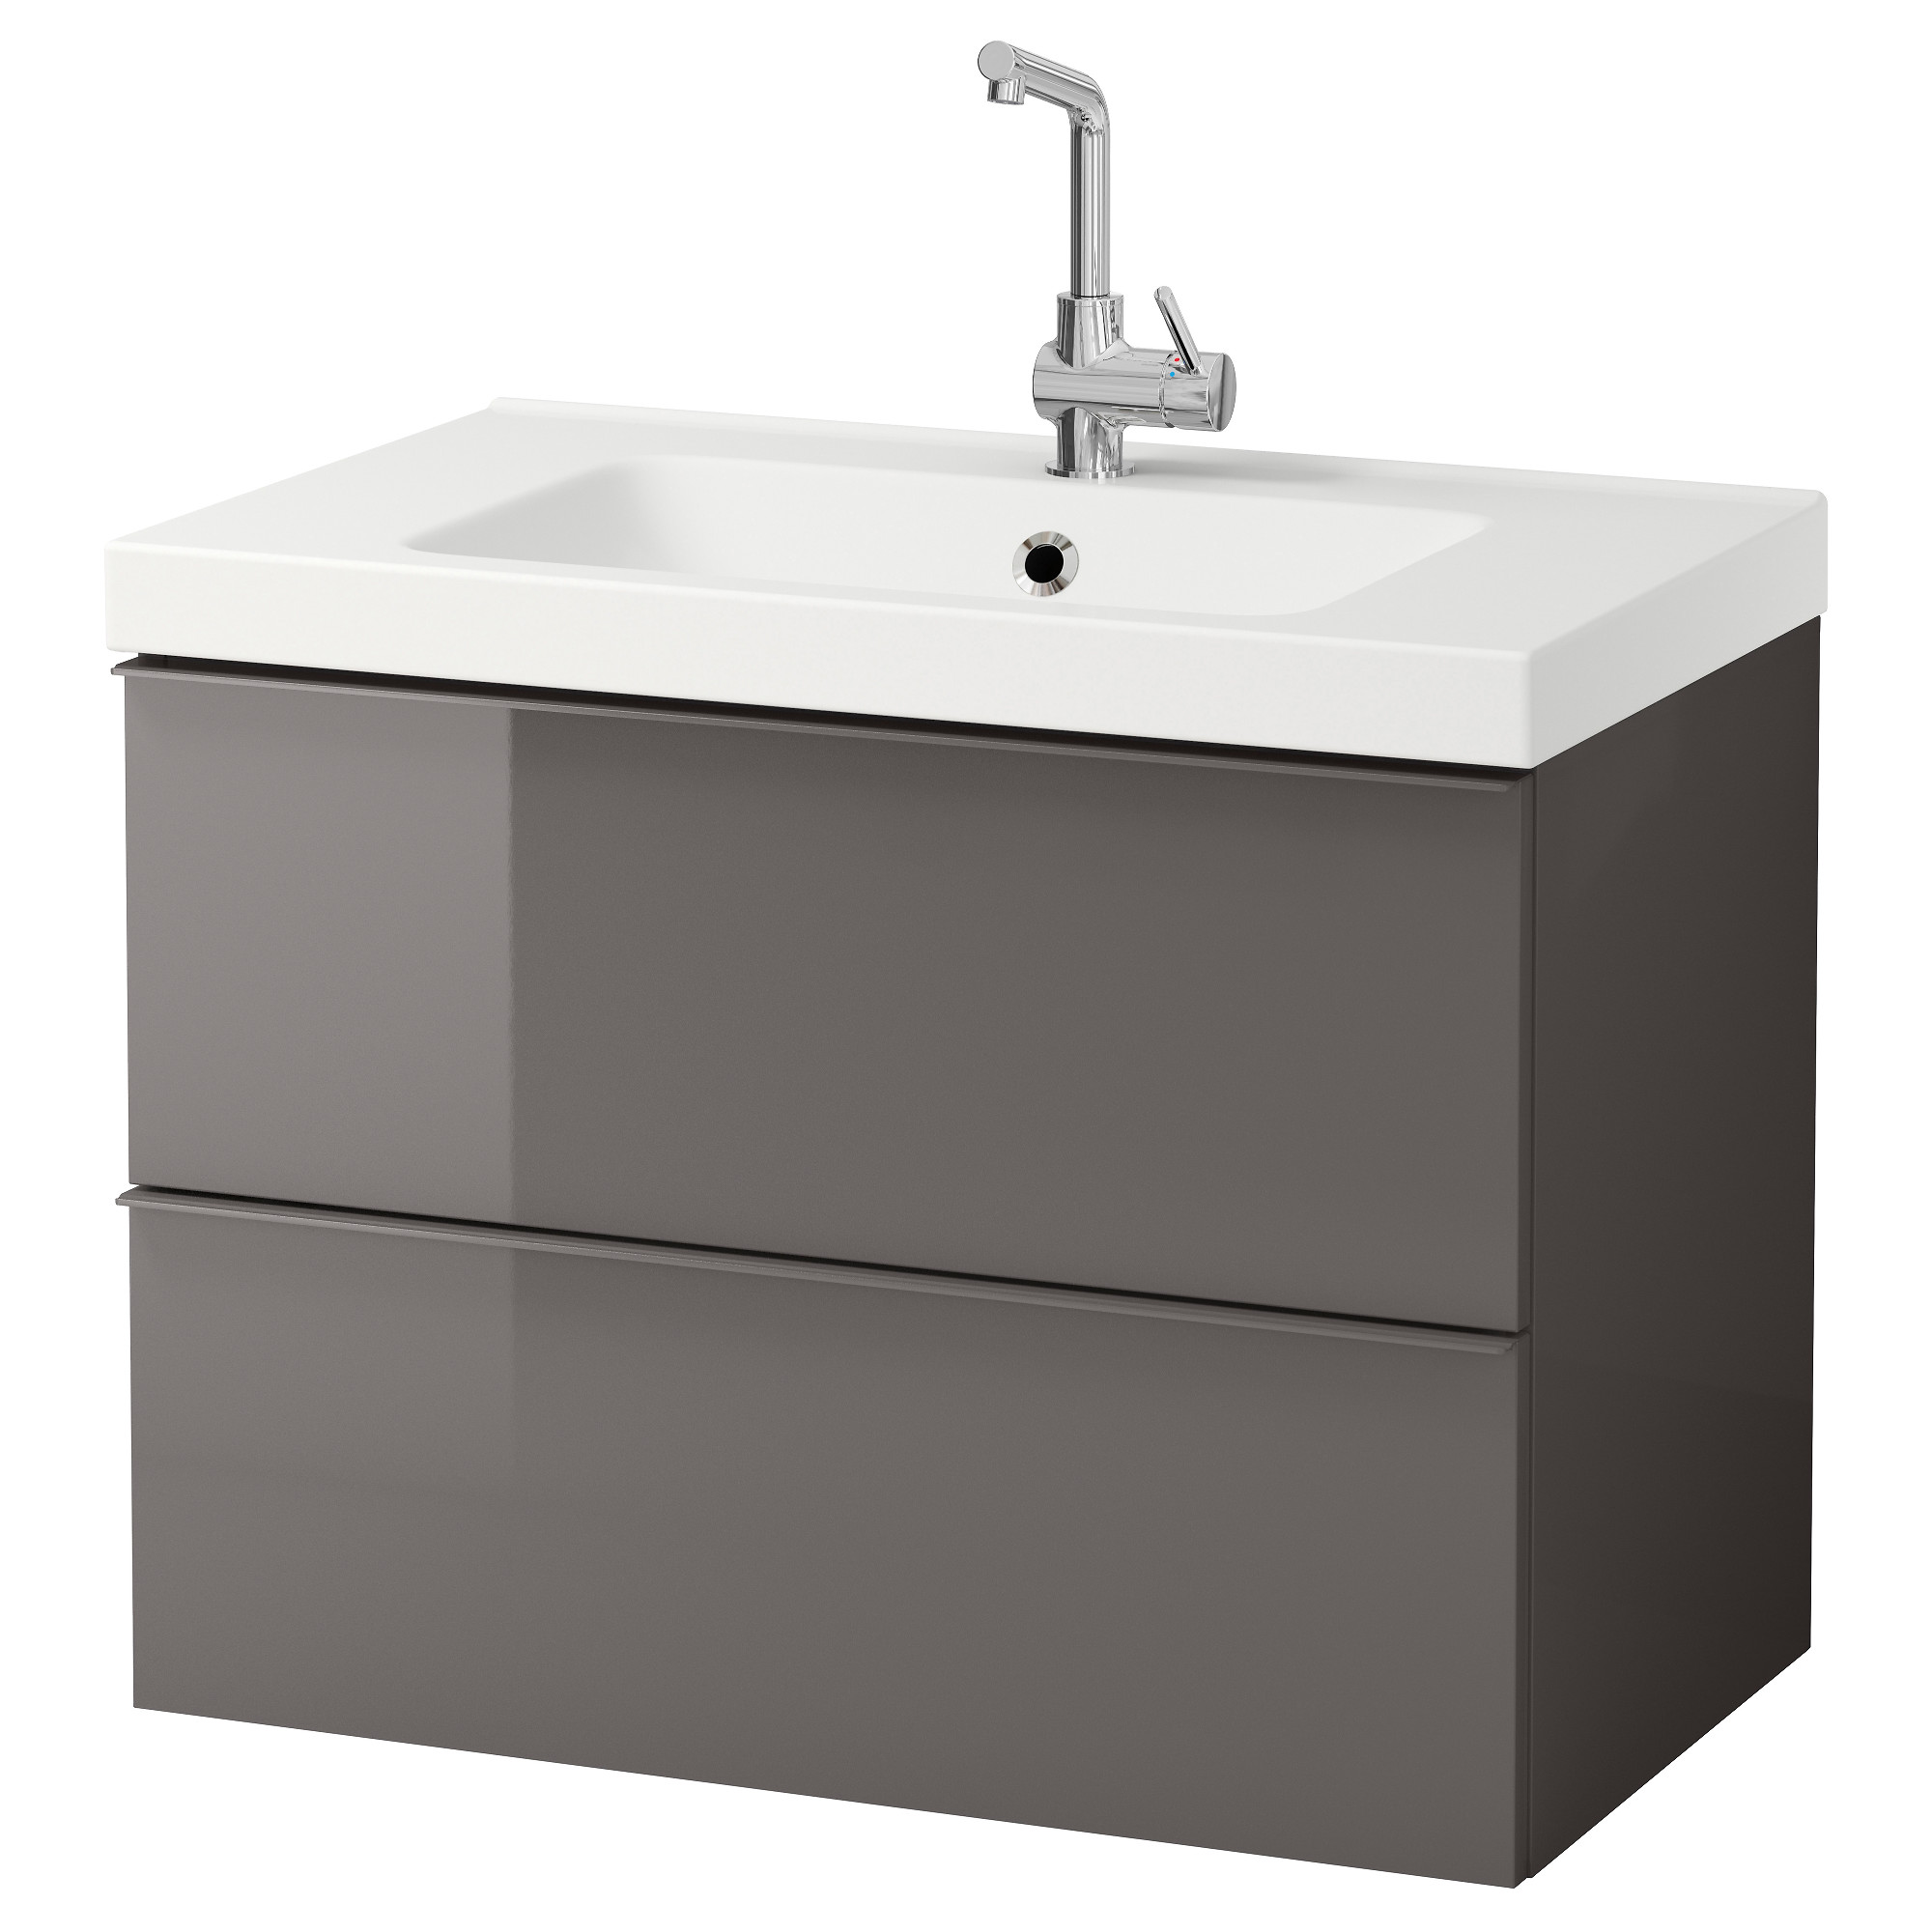 Cabinet With Drawers Godmorgon Odensvik Sink Cabinet With 2 Drawers High Gloss